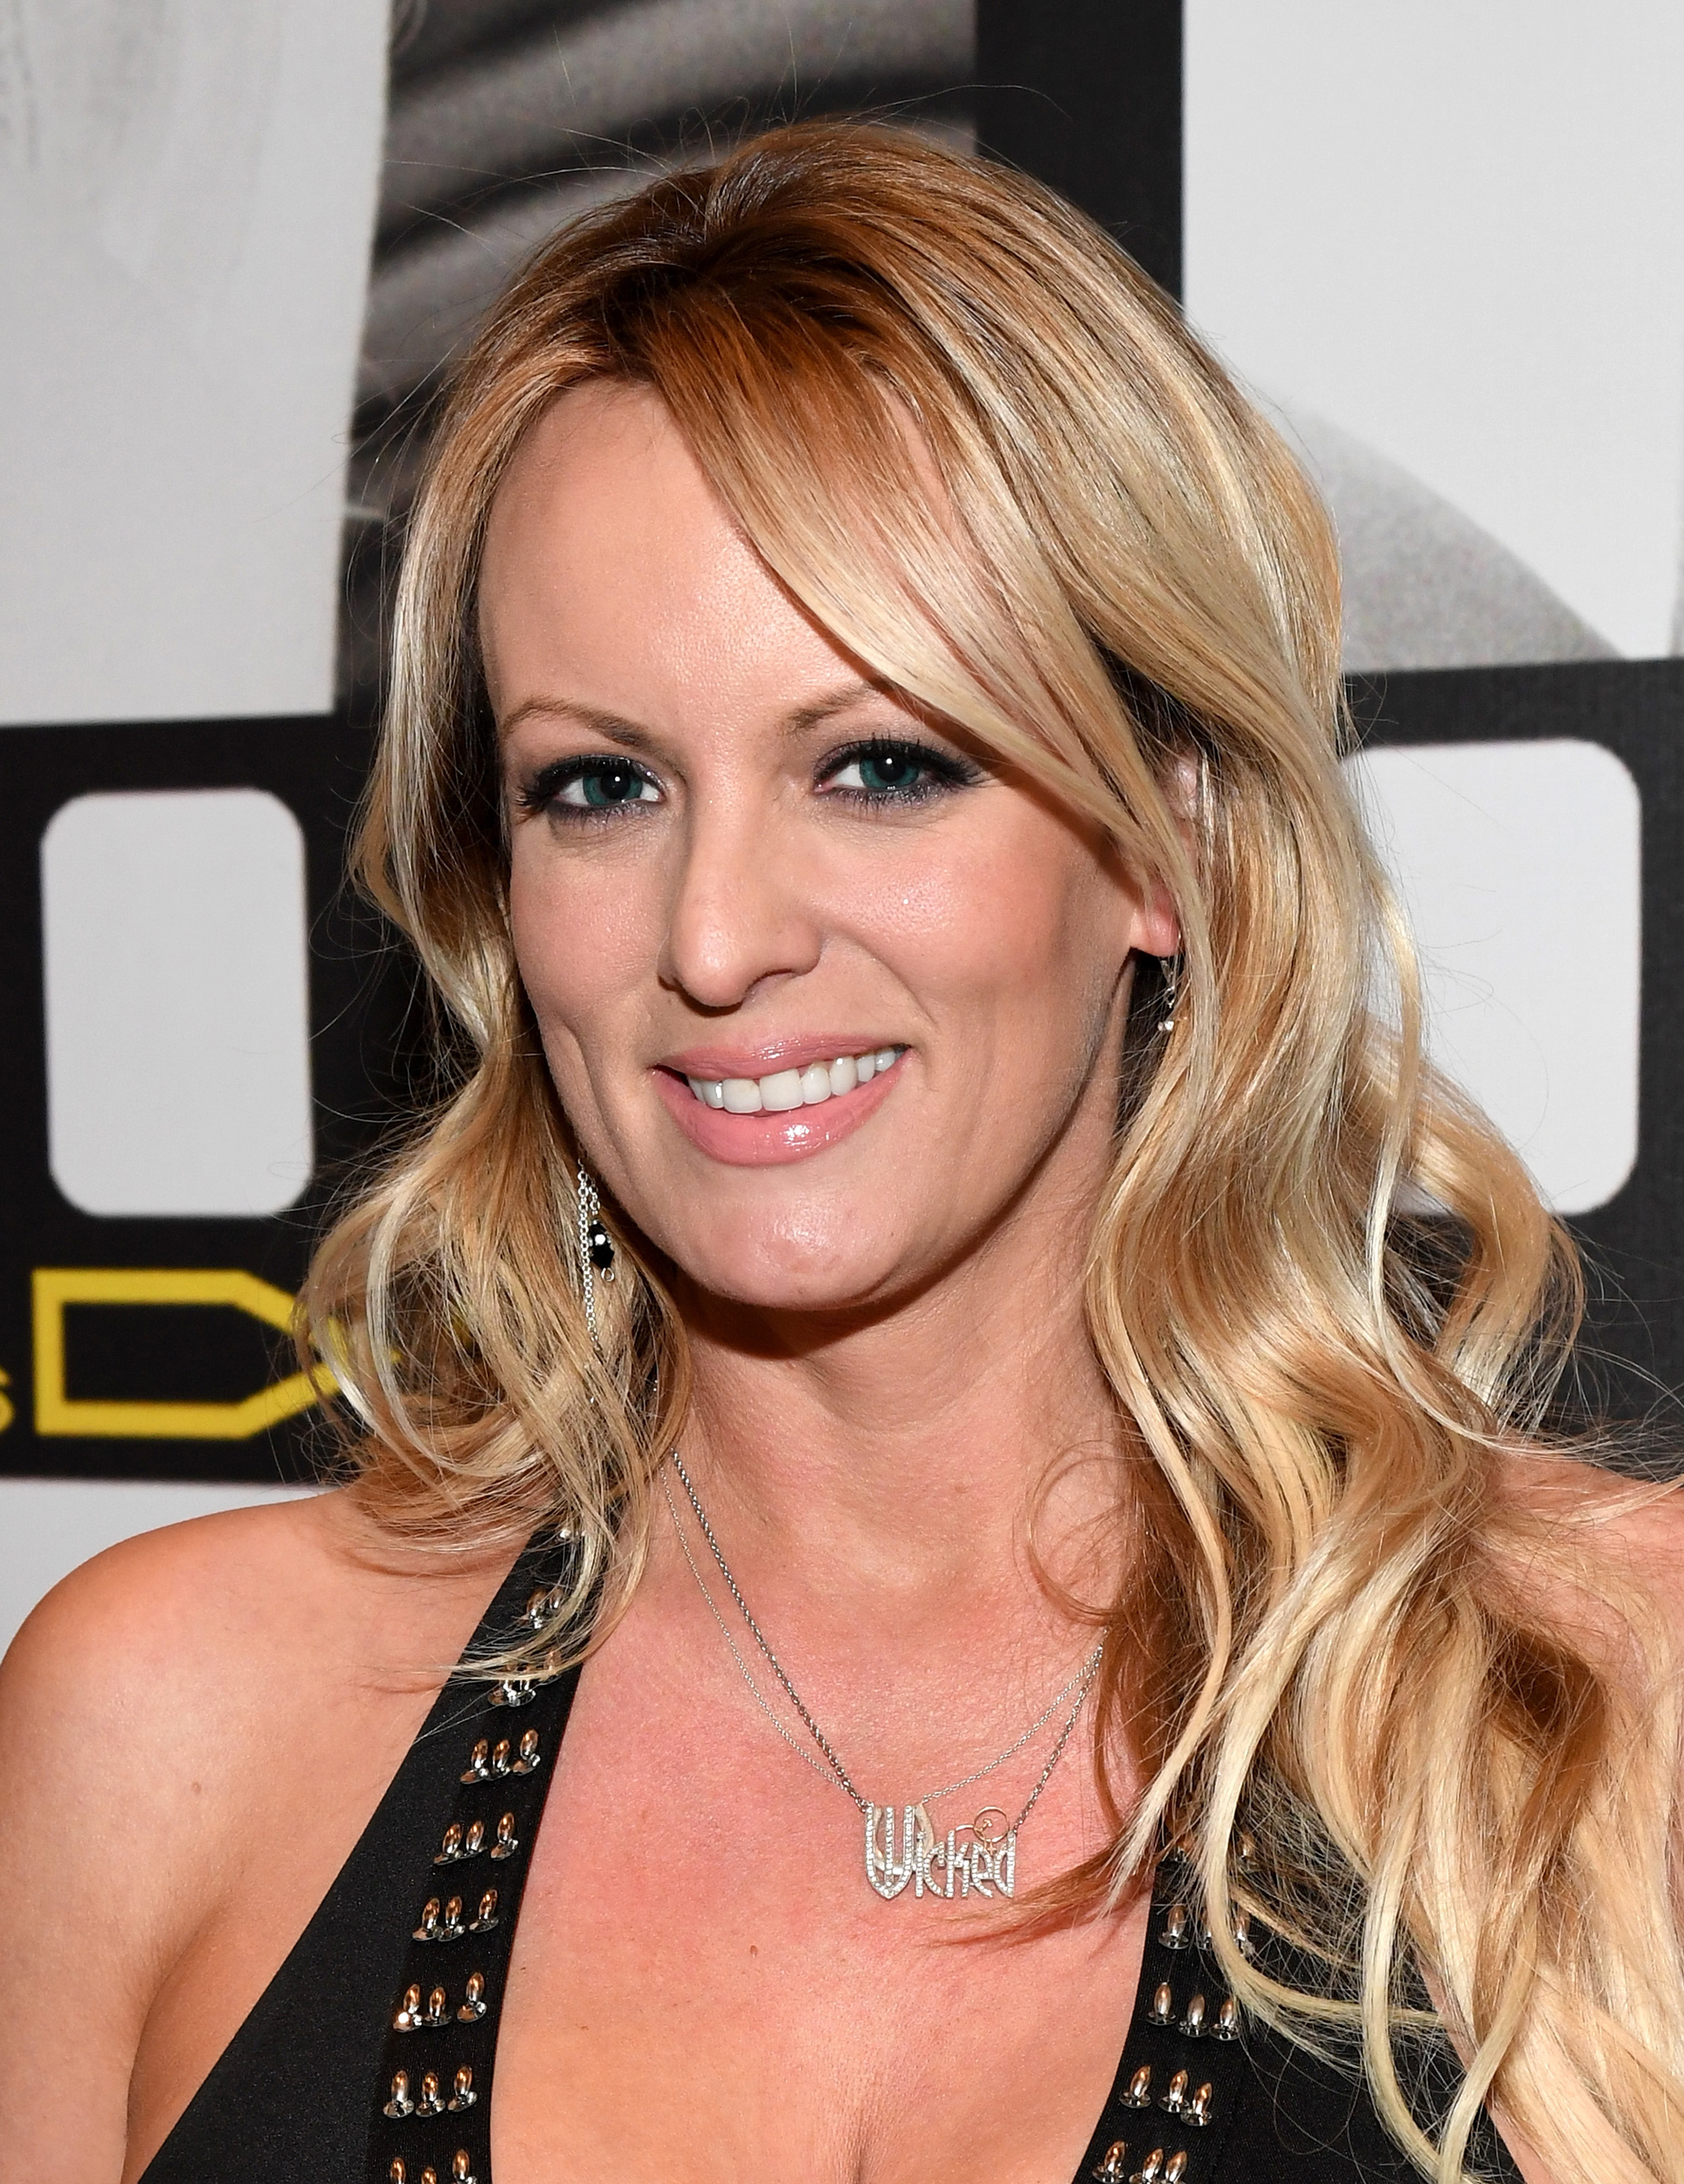 Porn star Stormy Daniels described affair with Donald Trump in ...